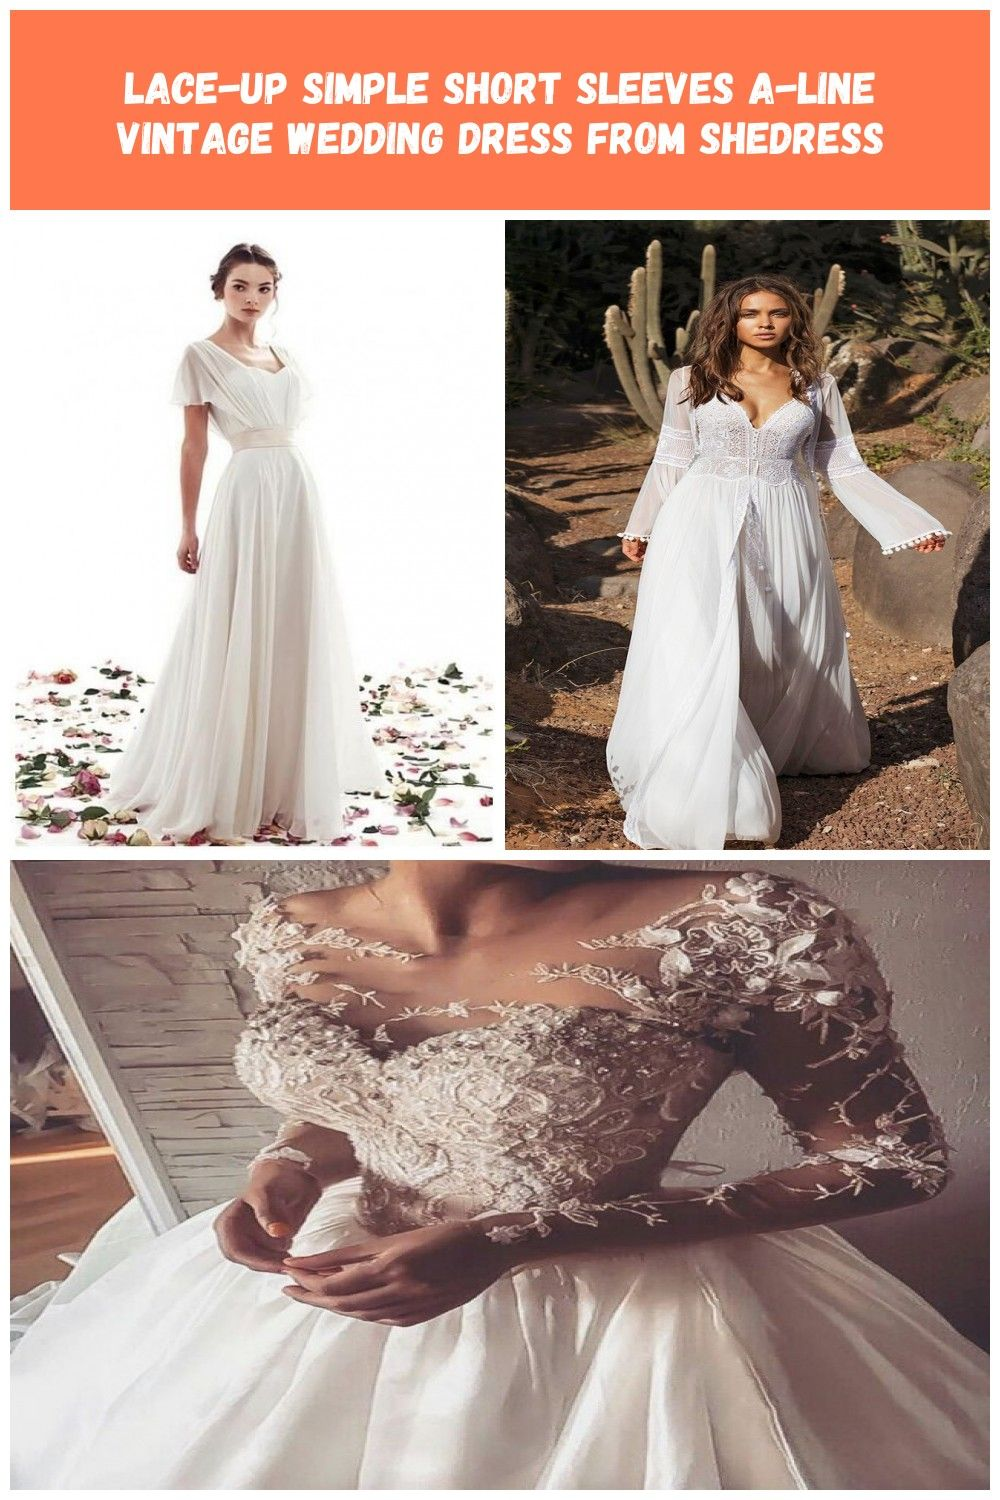 Lace Up Simple Short Sleeves A Line Vintage Wedding Dress Shedress Online Store Powere Wedding Dresses Vintage Wedding Dresses Lace Boho Wedding Dress Lace